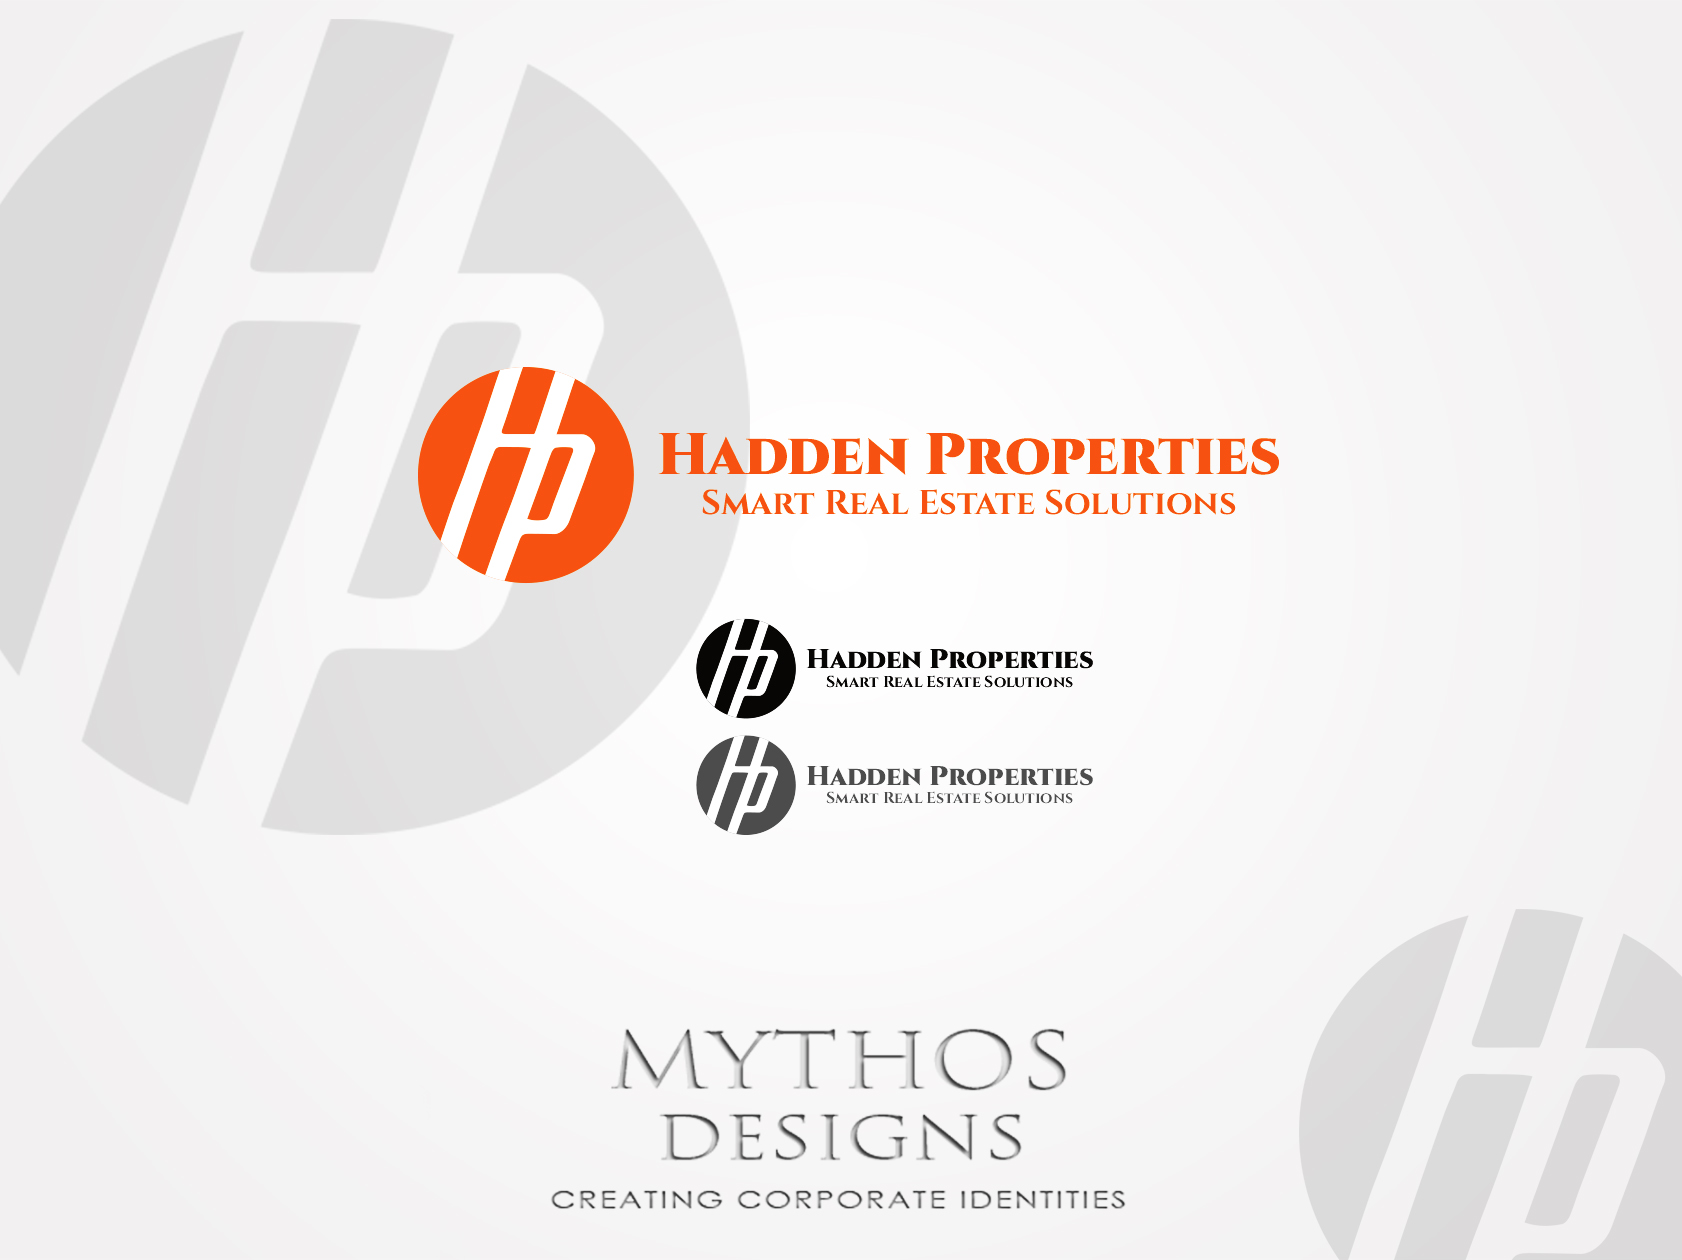 Logo Design by Mythos Designs - Entry No. 72 in the Logo Design Contest Artistic Logo Design for Hadden Properties.